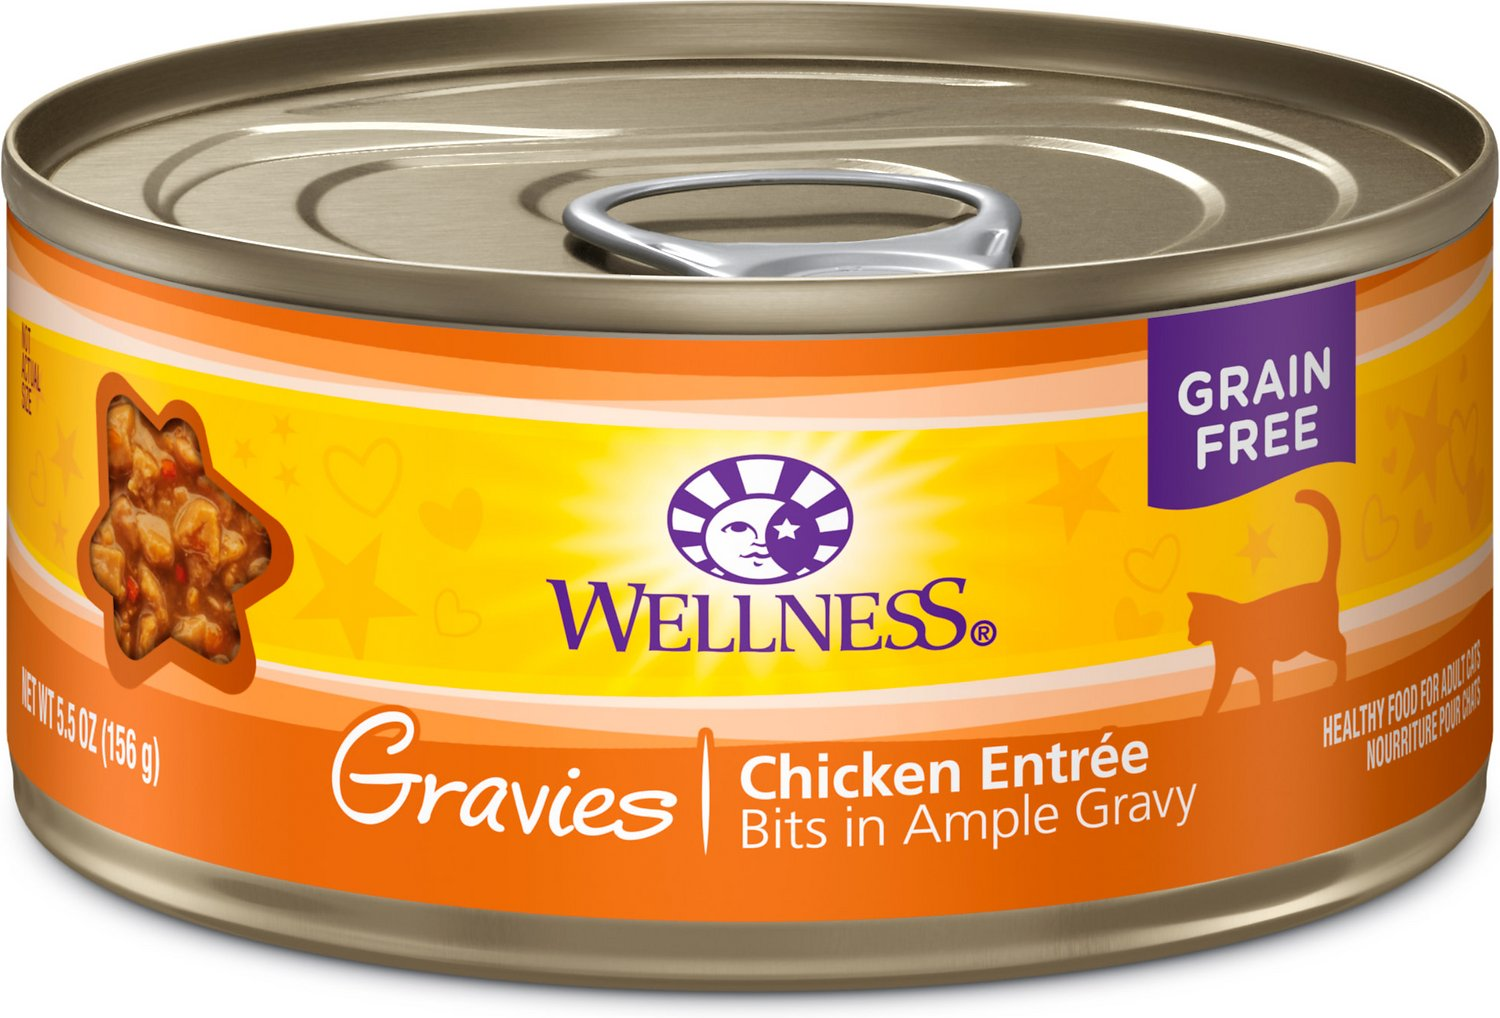 Wellness Natural Grain Free Gravies Chicken Dinner Canned